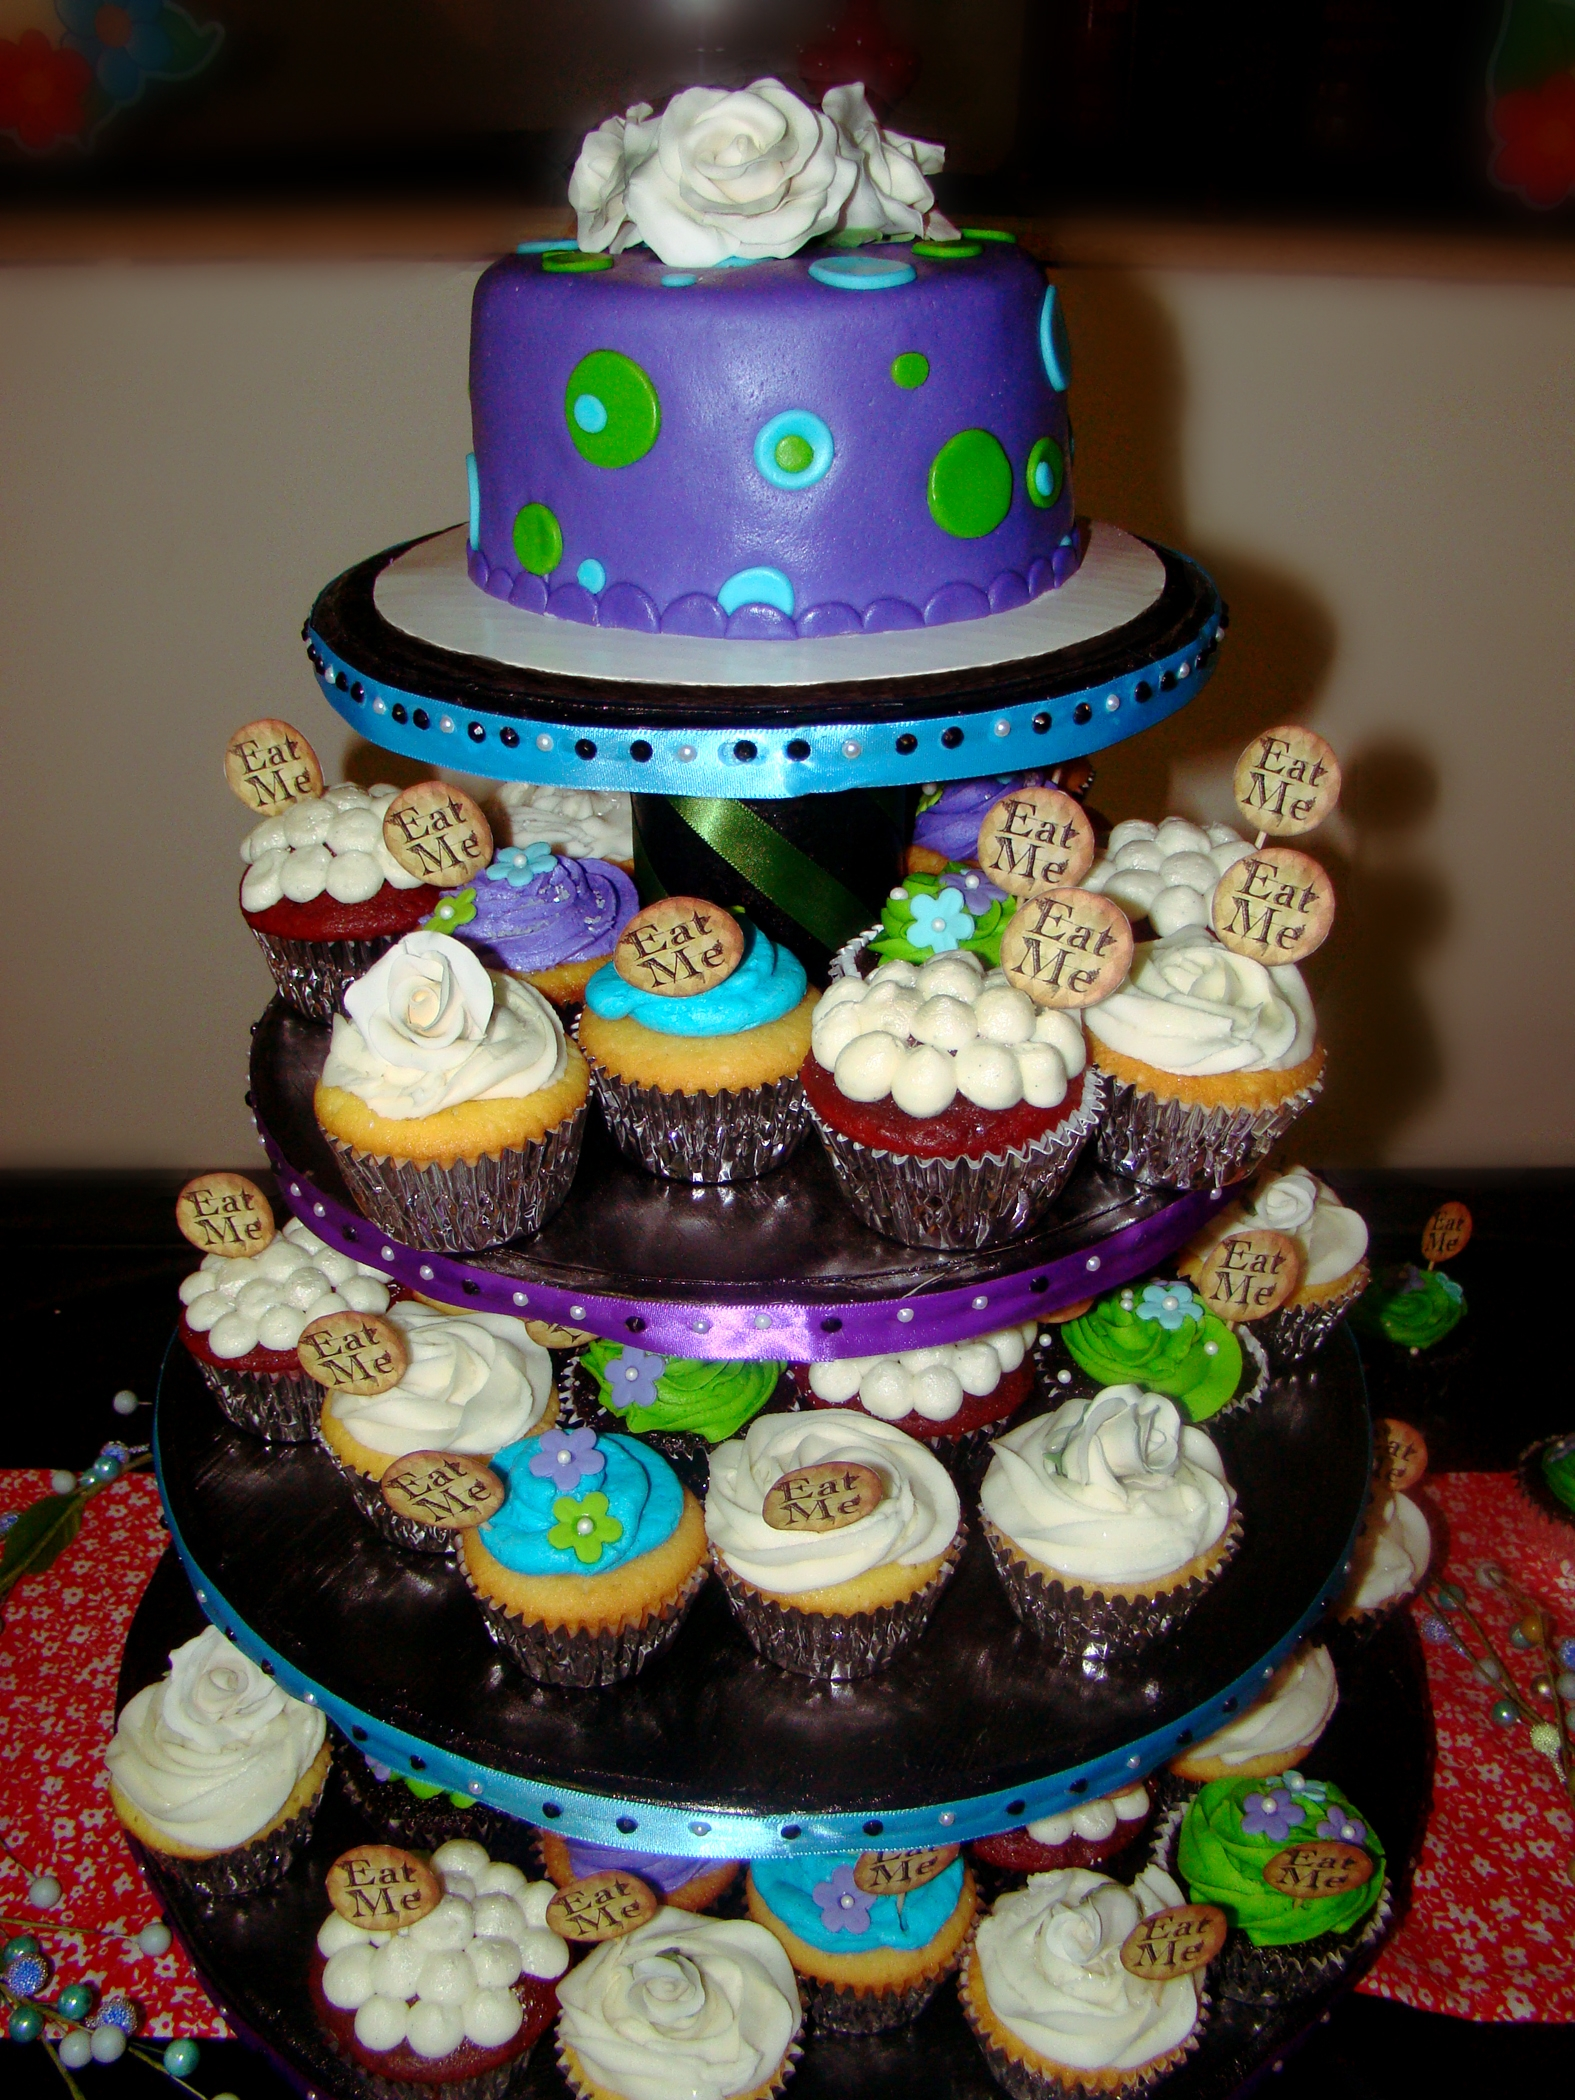 A cupcake tree and 6 inch cutting cake done in the theme: Alice and Wonderland Tea Party, through the looking glass. 